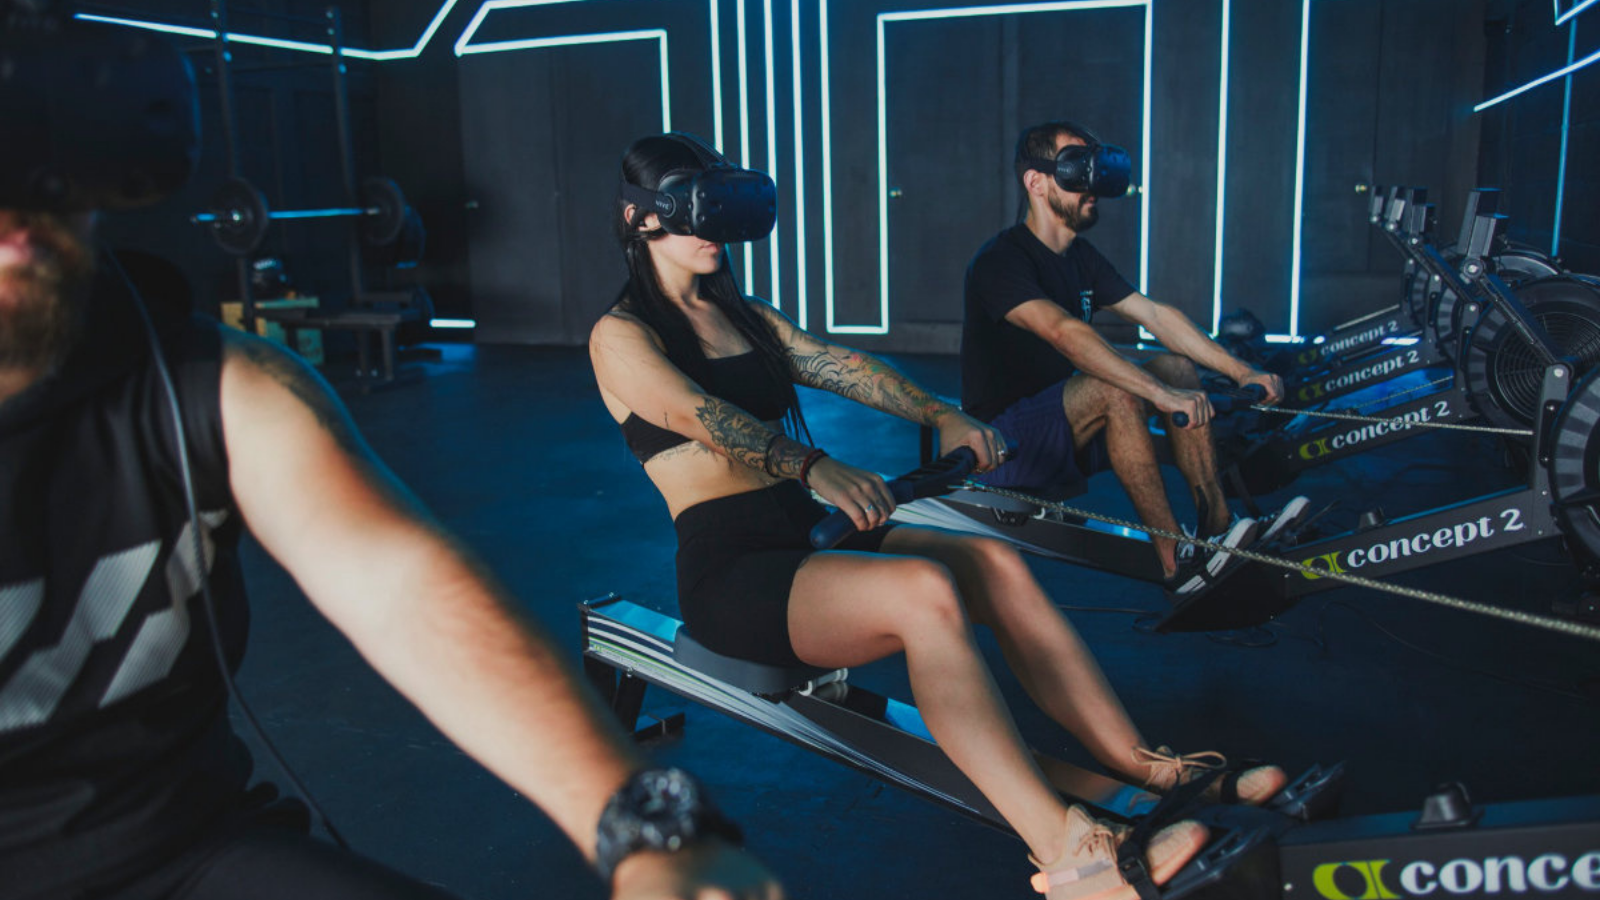 VR FitnessThe-Key-to-Attracting-New-Customer-Segments-for-Fitness-Centers